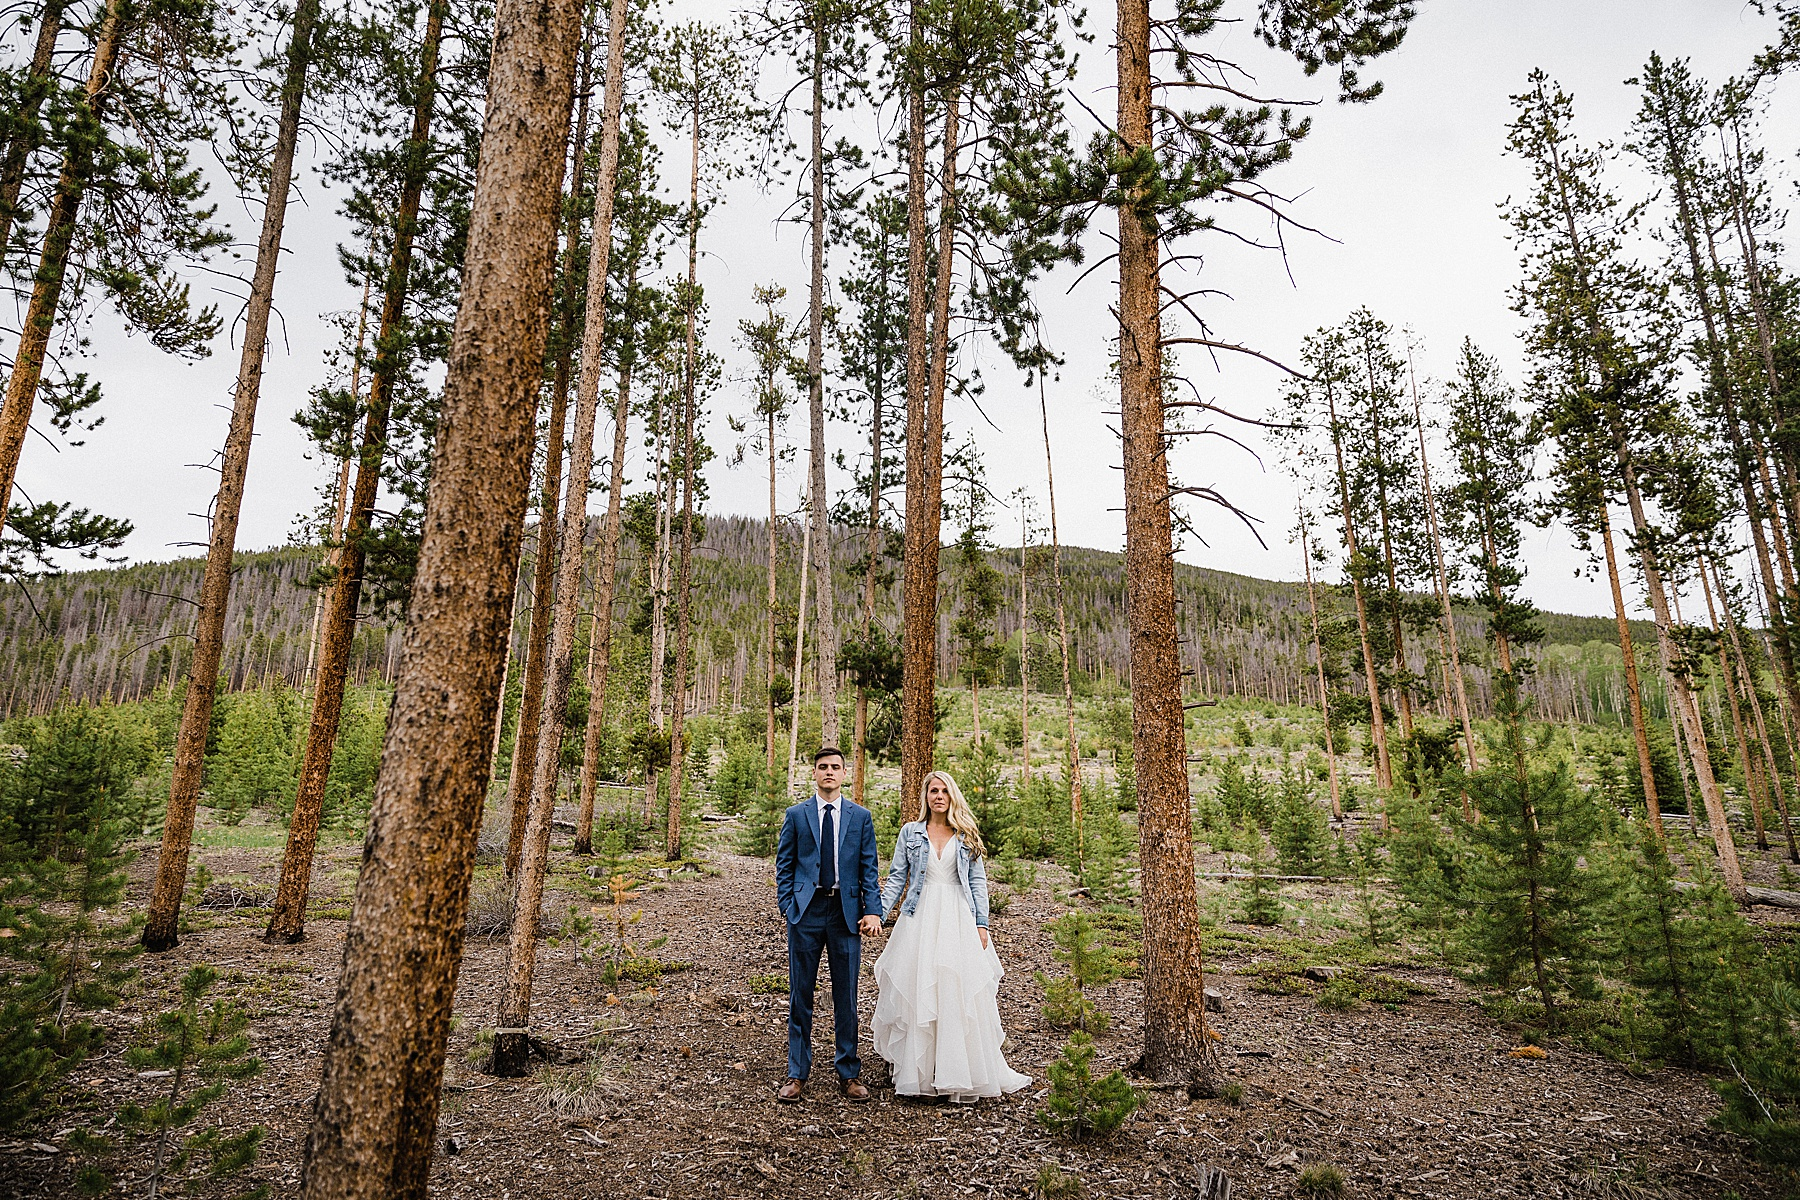 Breckenridge Intimate Wedding | Colorado Elopement Photographer + Videographer | Vow of the Wild